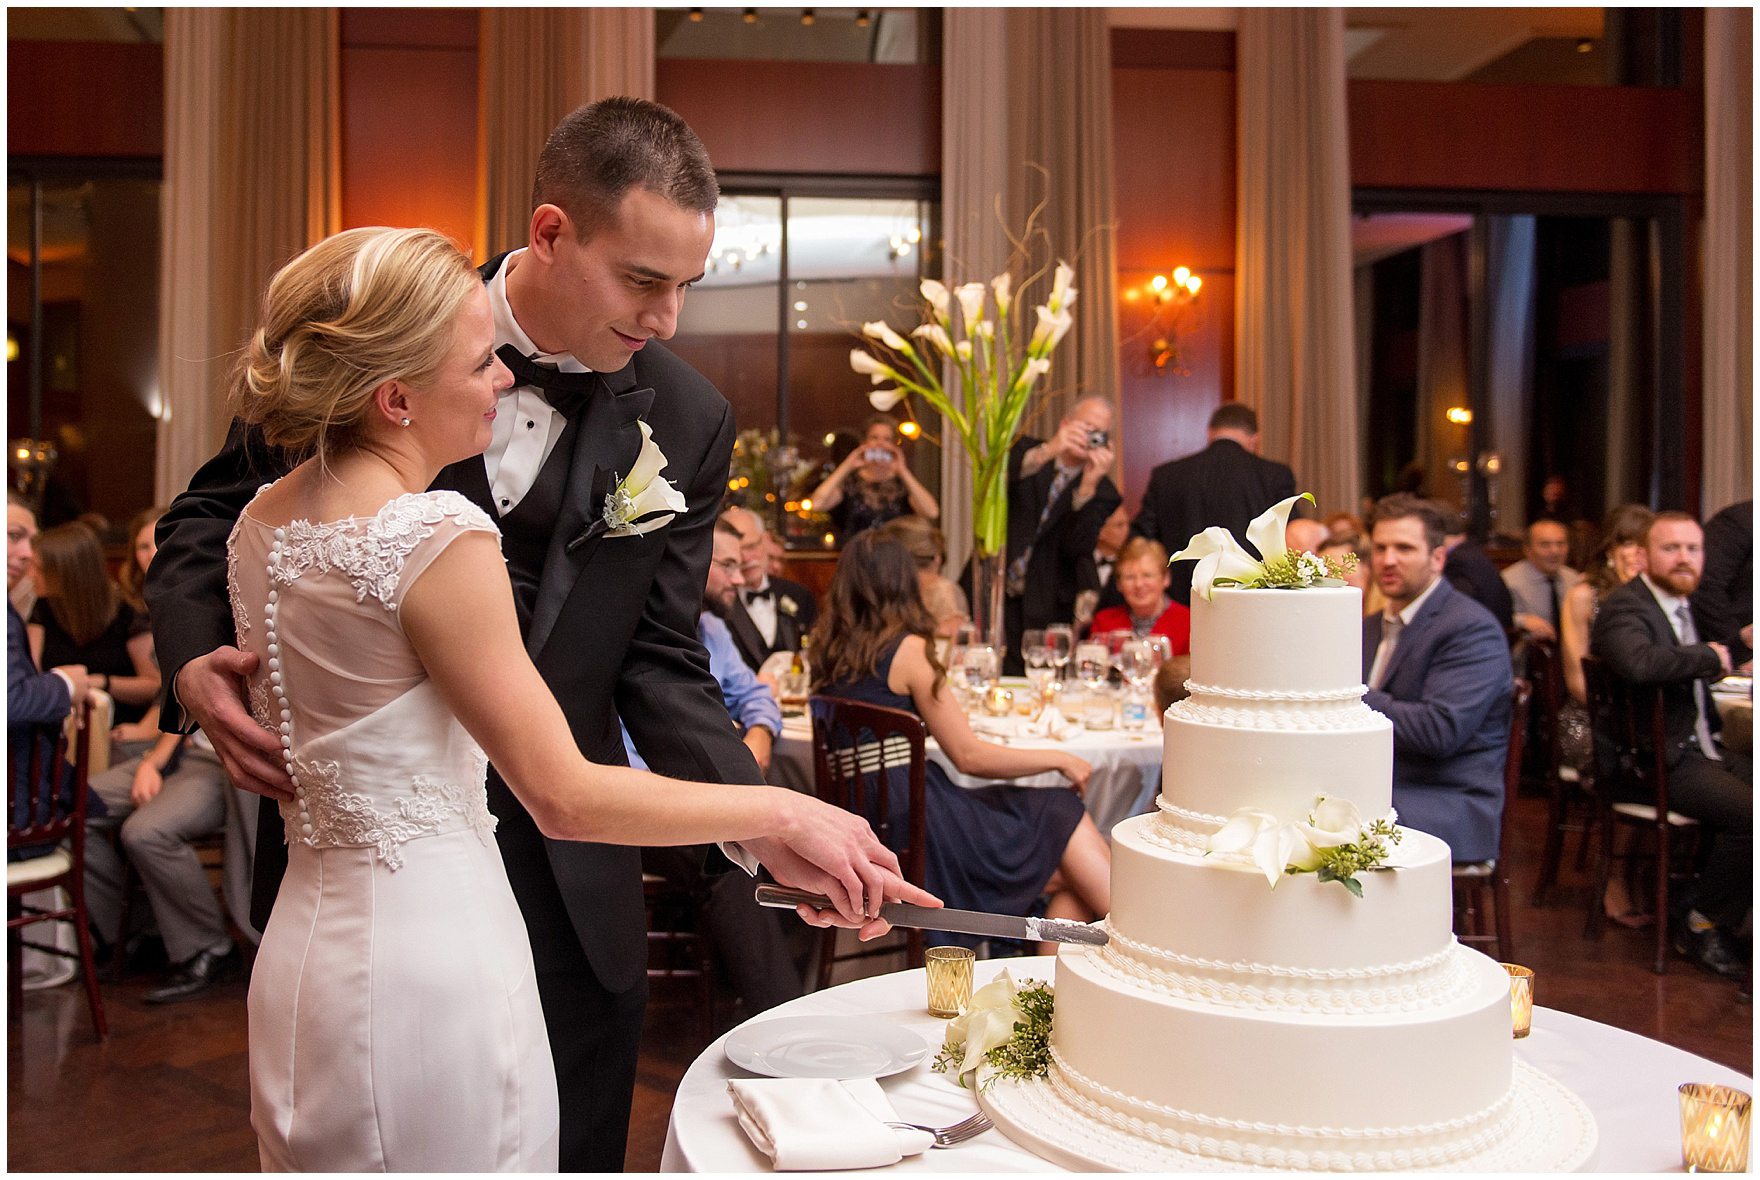 The bride and groom cut their cake during a Newberry Library Chicago wedding reception.